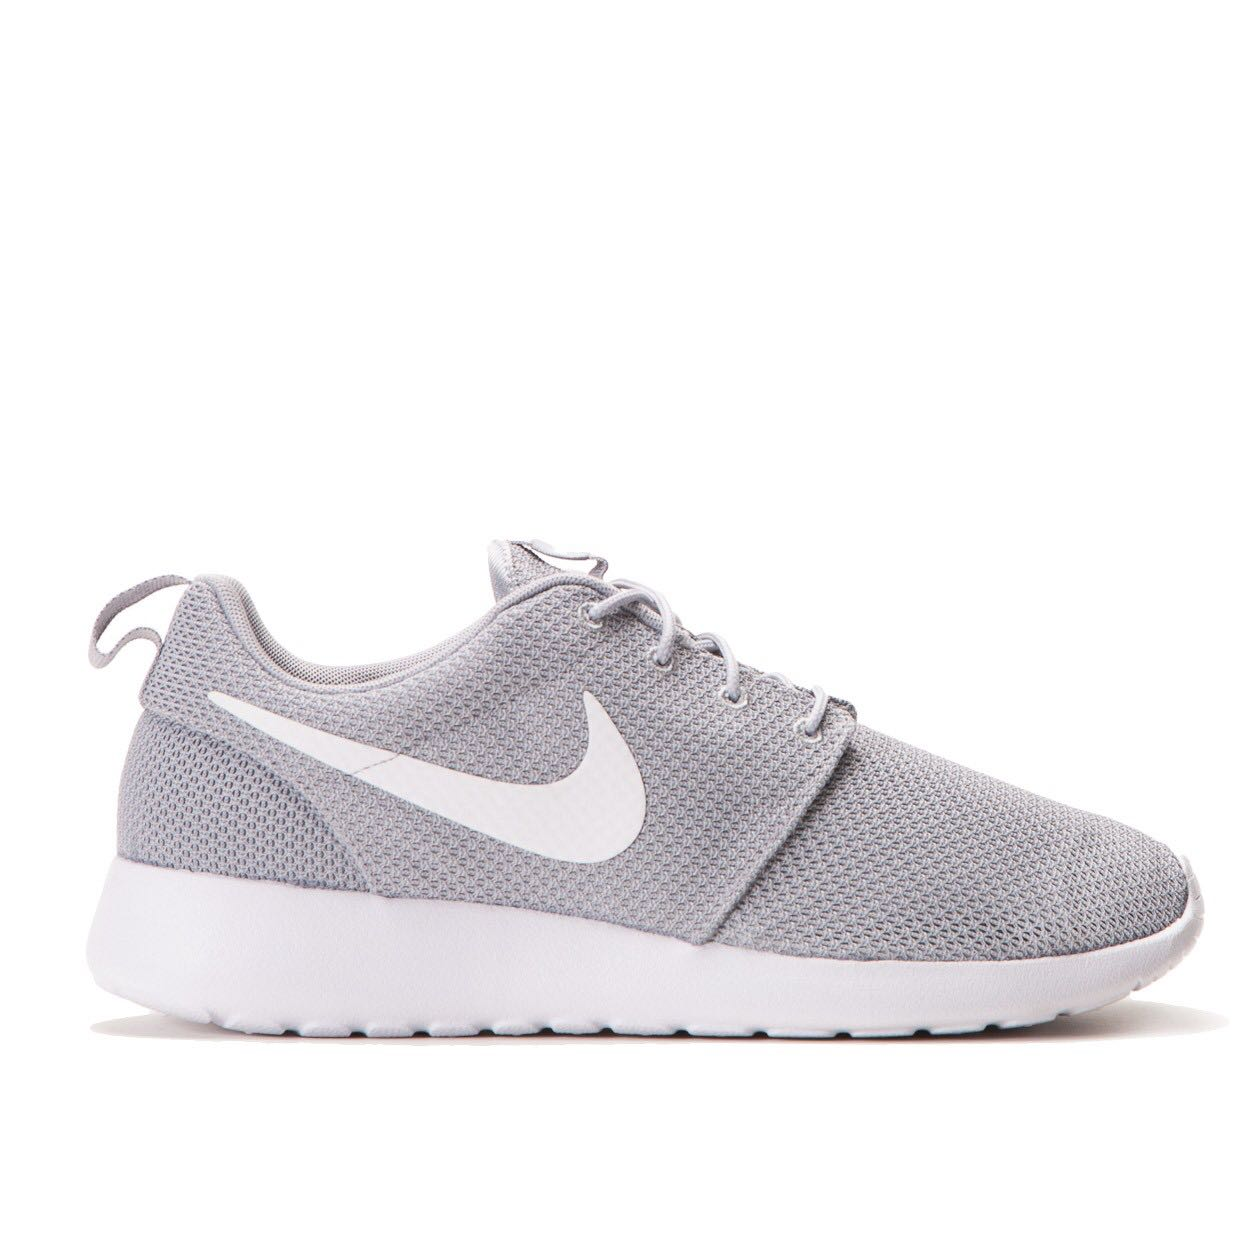 nike schuhe damen roshe run grau augmented reality. Black Bedroom Furniture Sets. Home Design Ideas